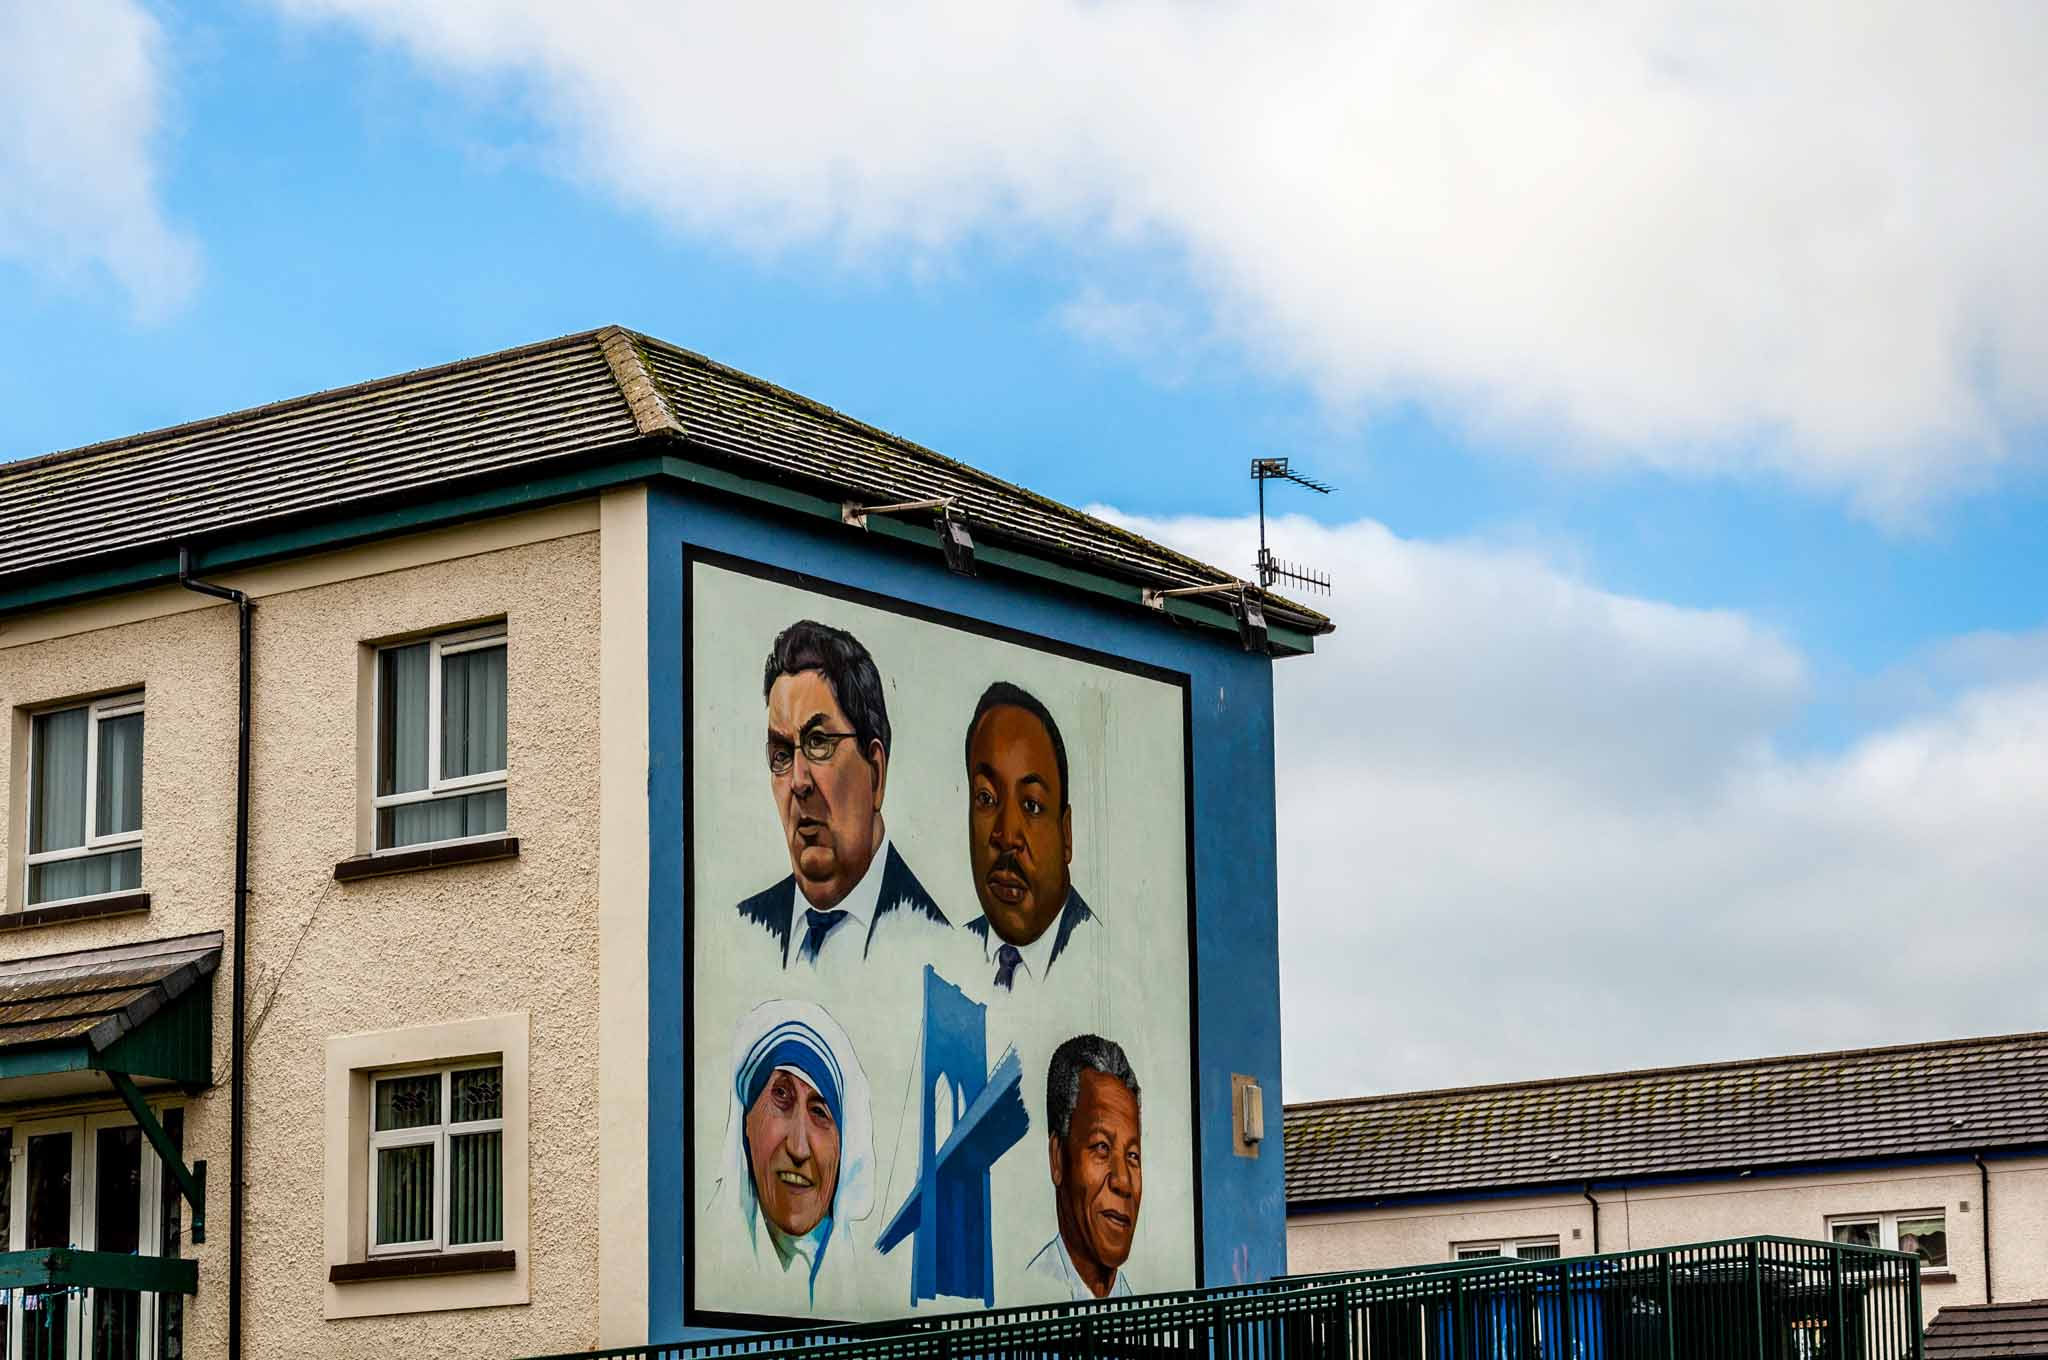 John Hume mural with Mother Teresa, Martin Luther King, and Nelson Mandela